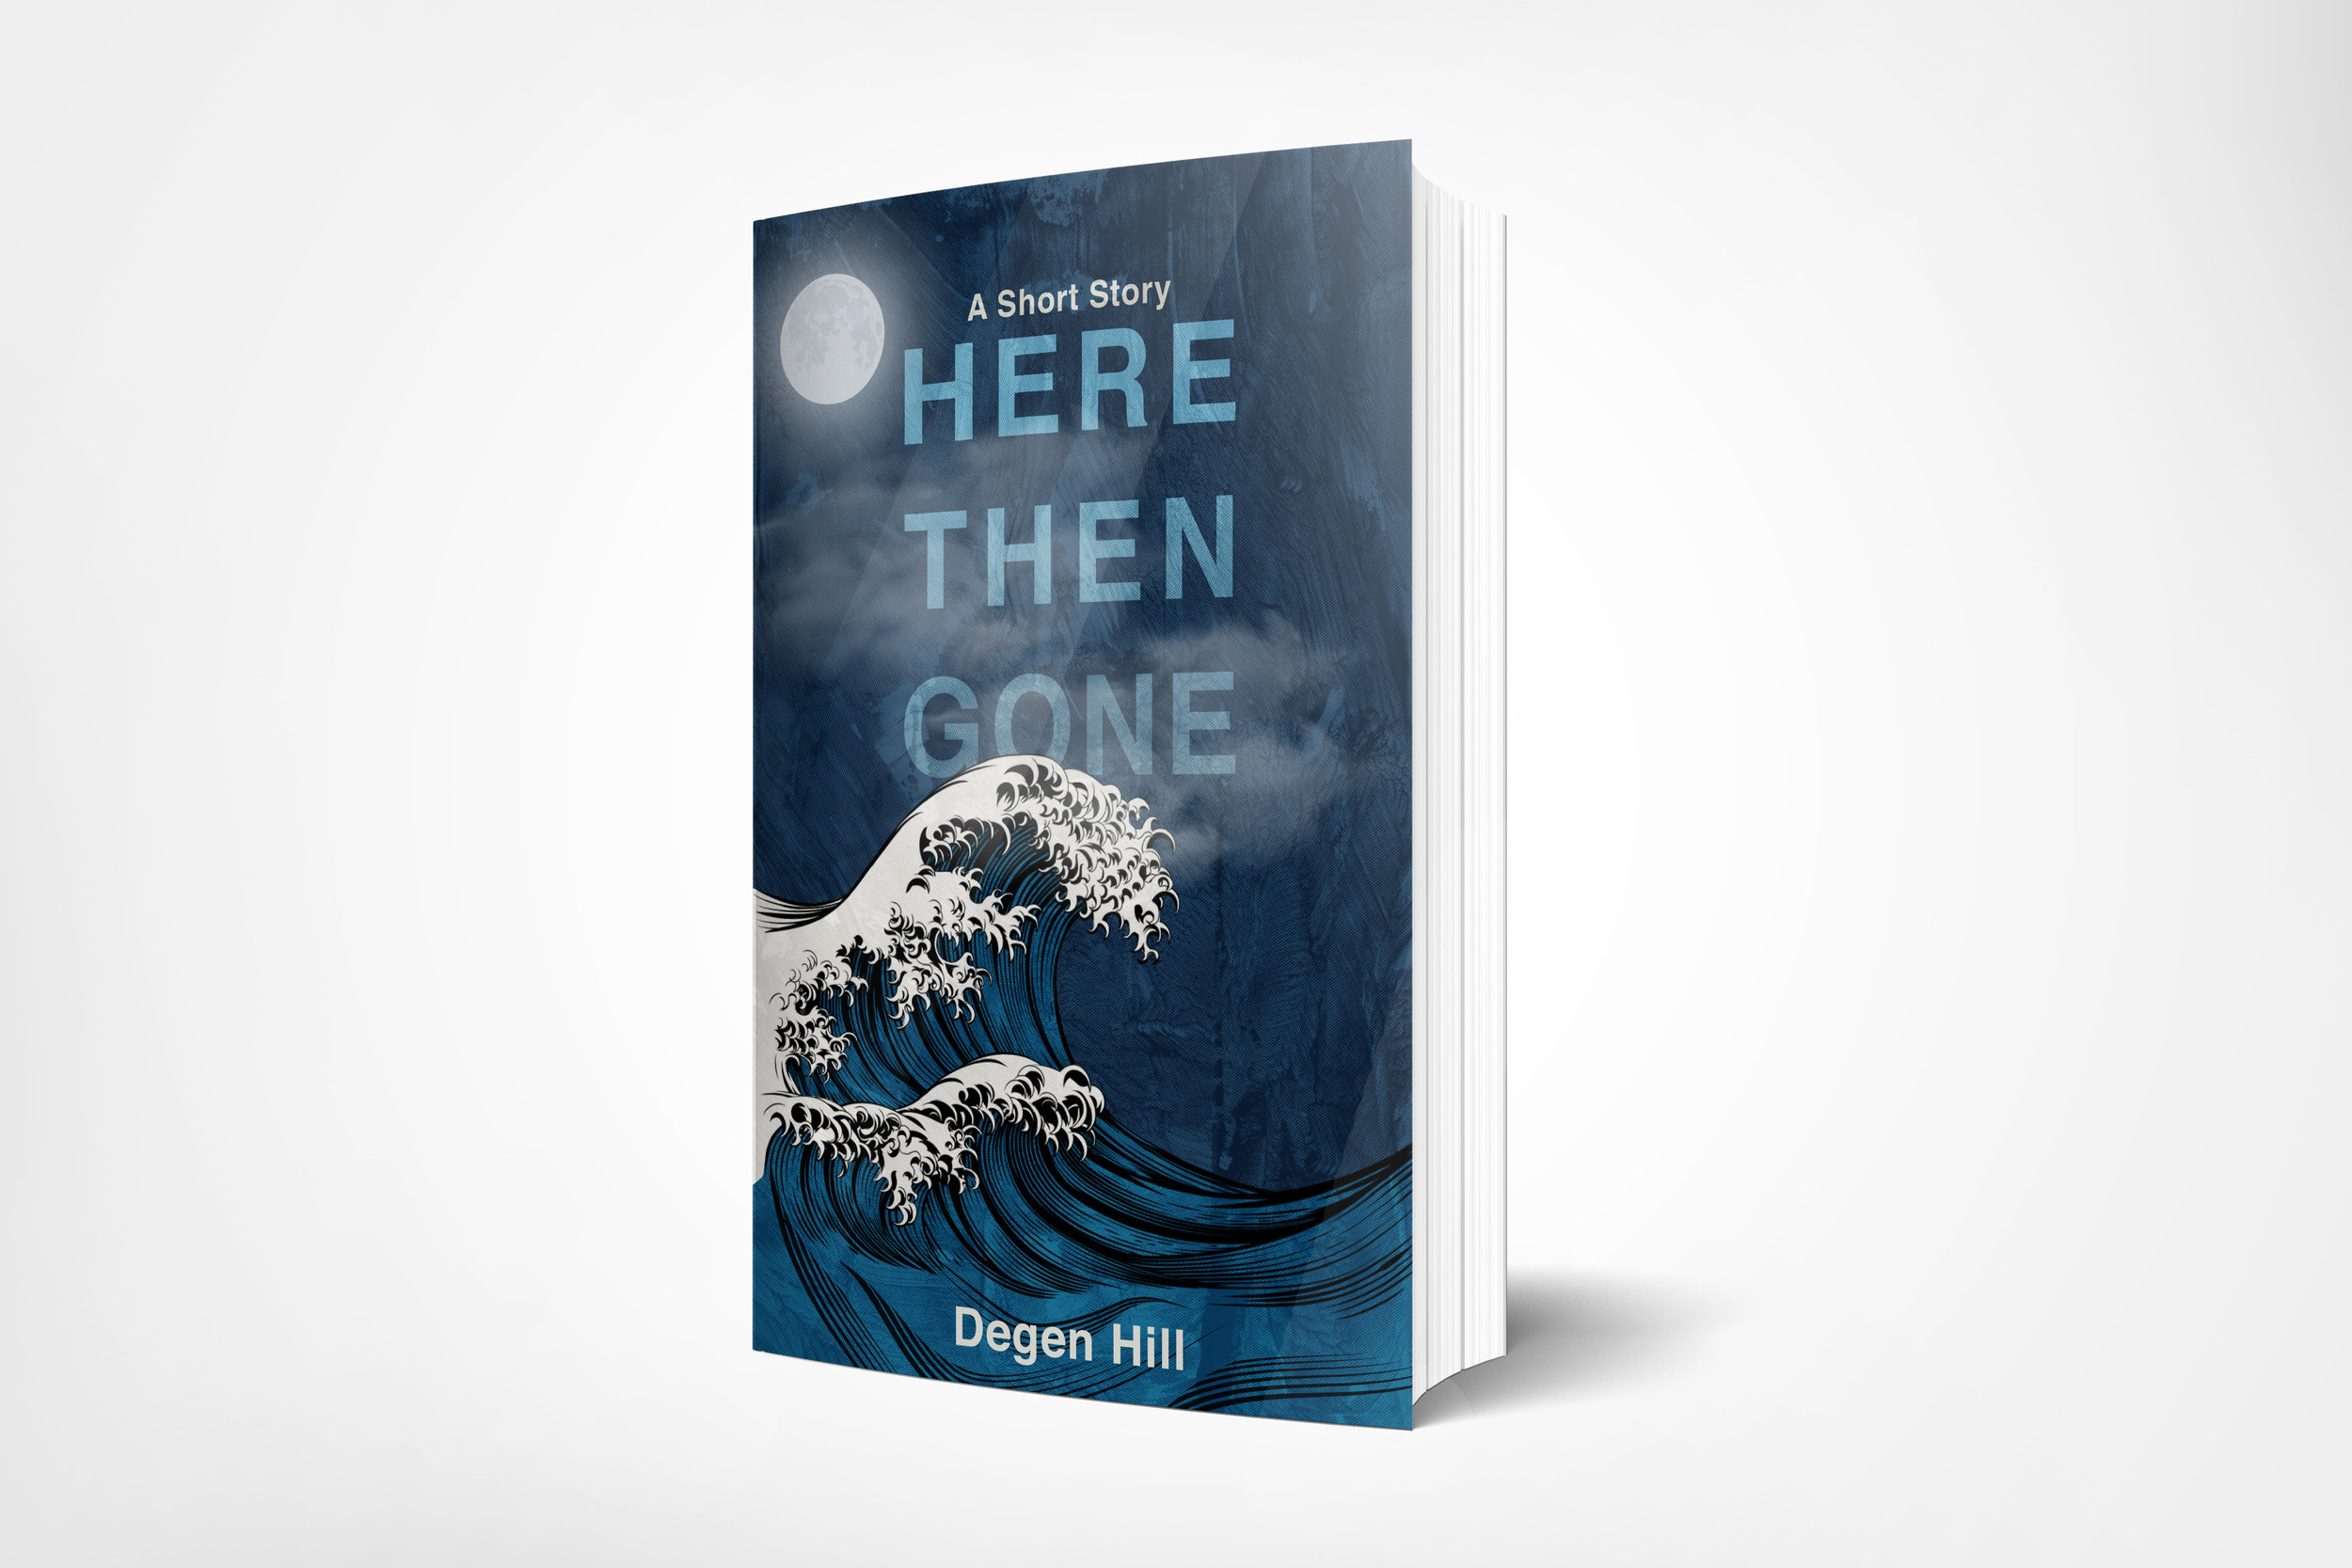 Here Then Gone - A Short Story